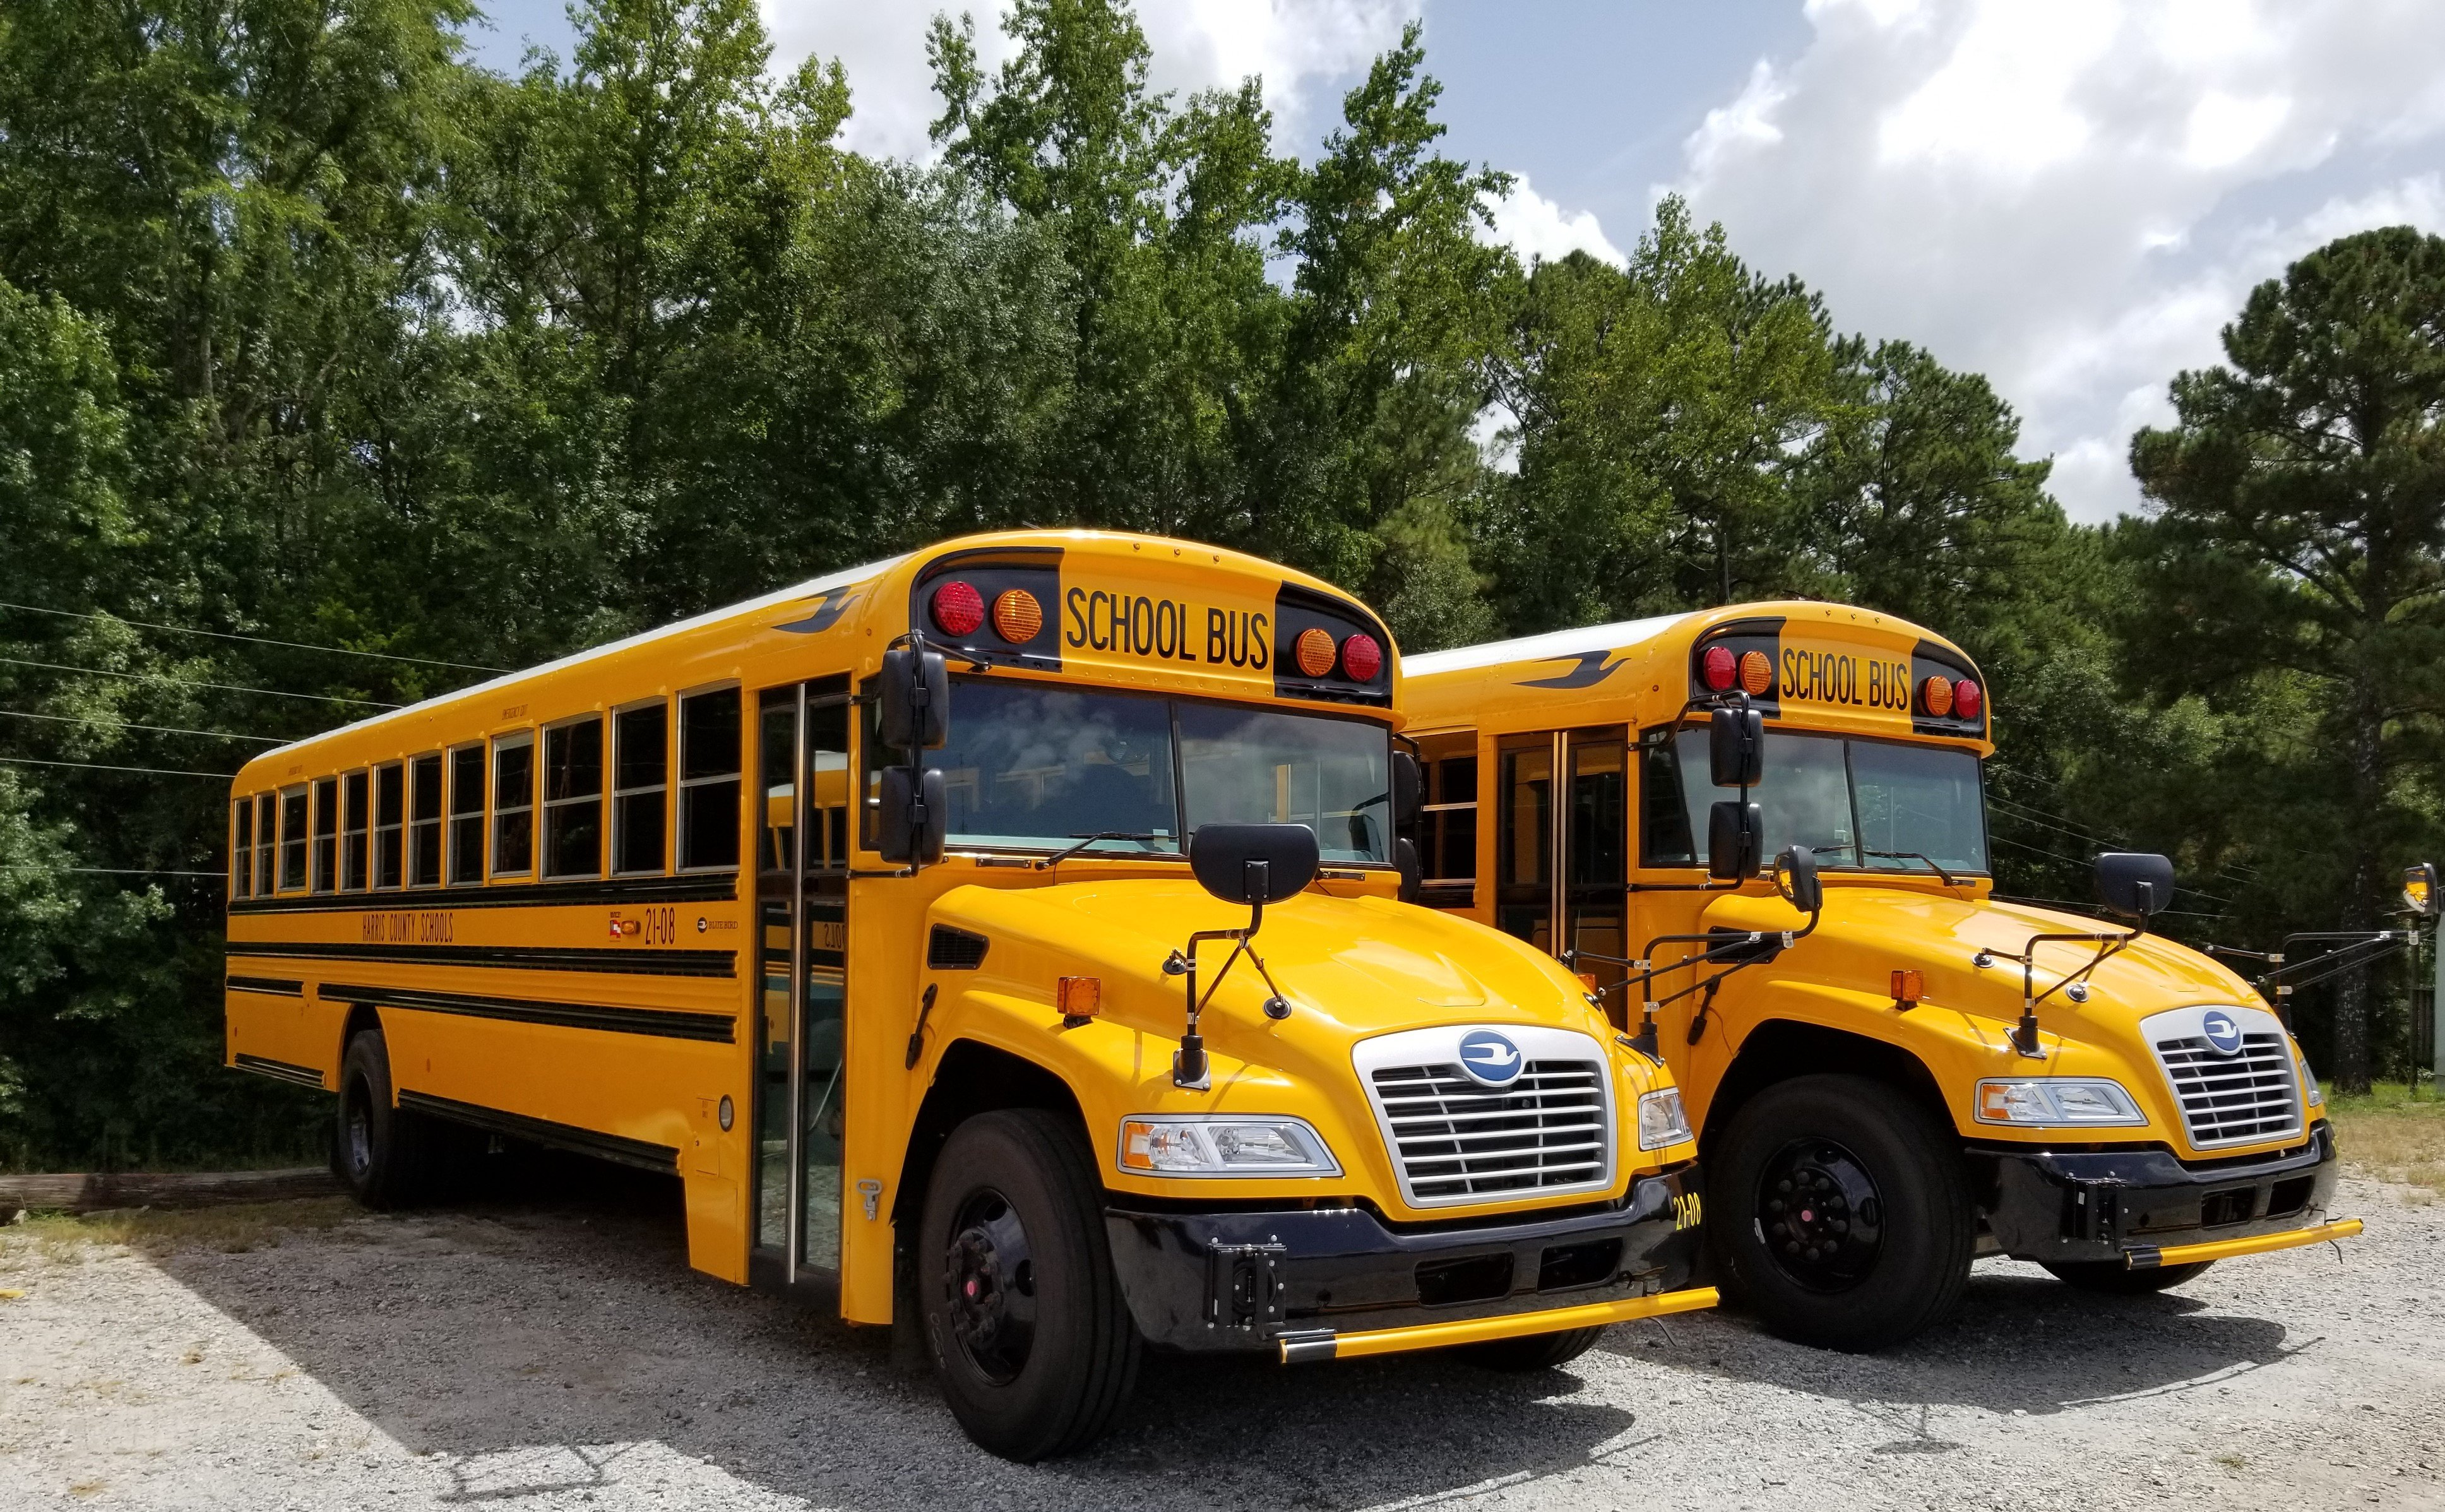 Georgia District Receives 2 New School Buses, Adds Antimicrobial Treatment